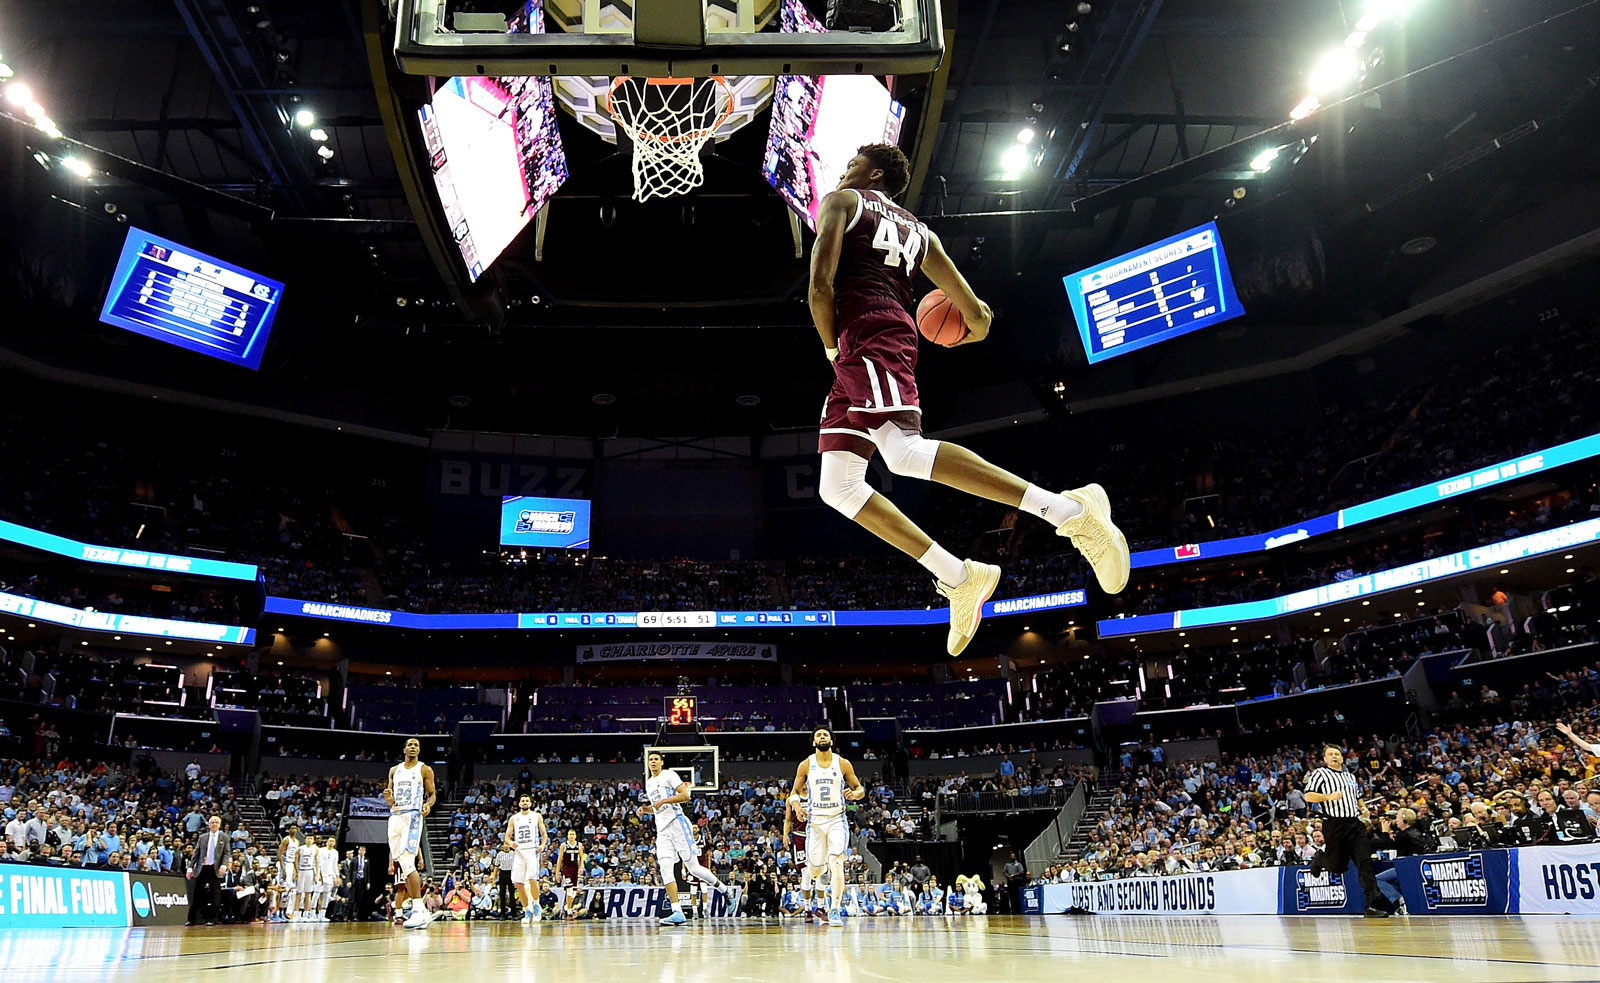 Robert Williams #44 of the Texas A&M Aggies dunks on the North Carolina Tar Heels during the second round of the 2018 NCAA Men's Basketball Tournament at Spectrum Center on March 18, 2018 in Charlotte, North Carolina.